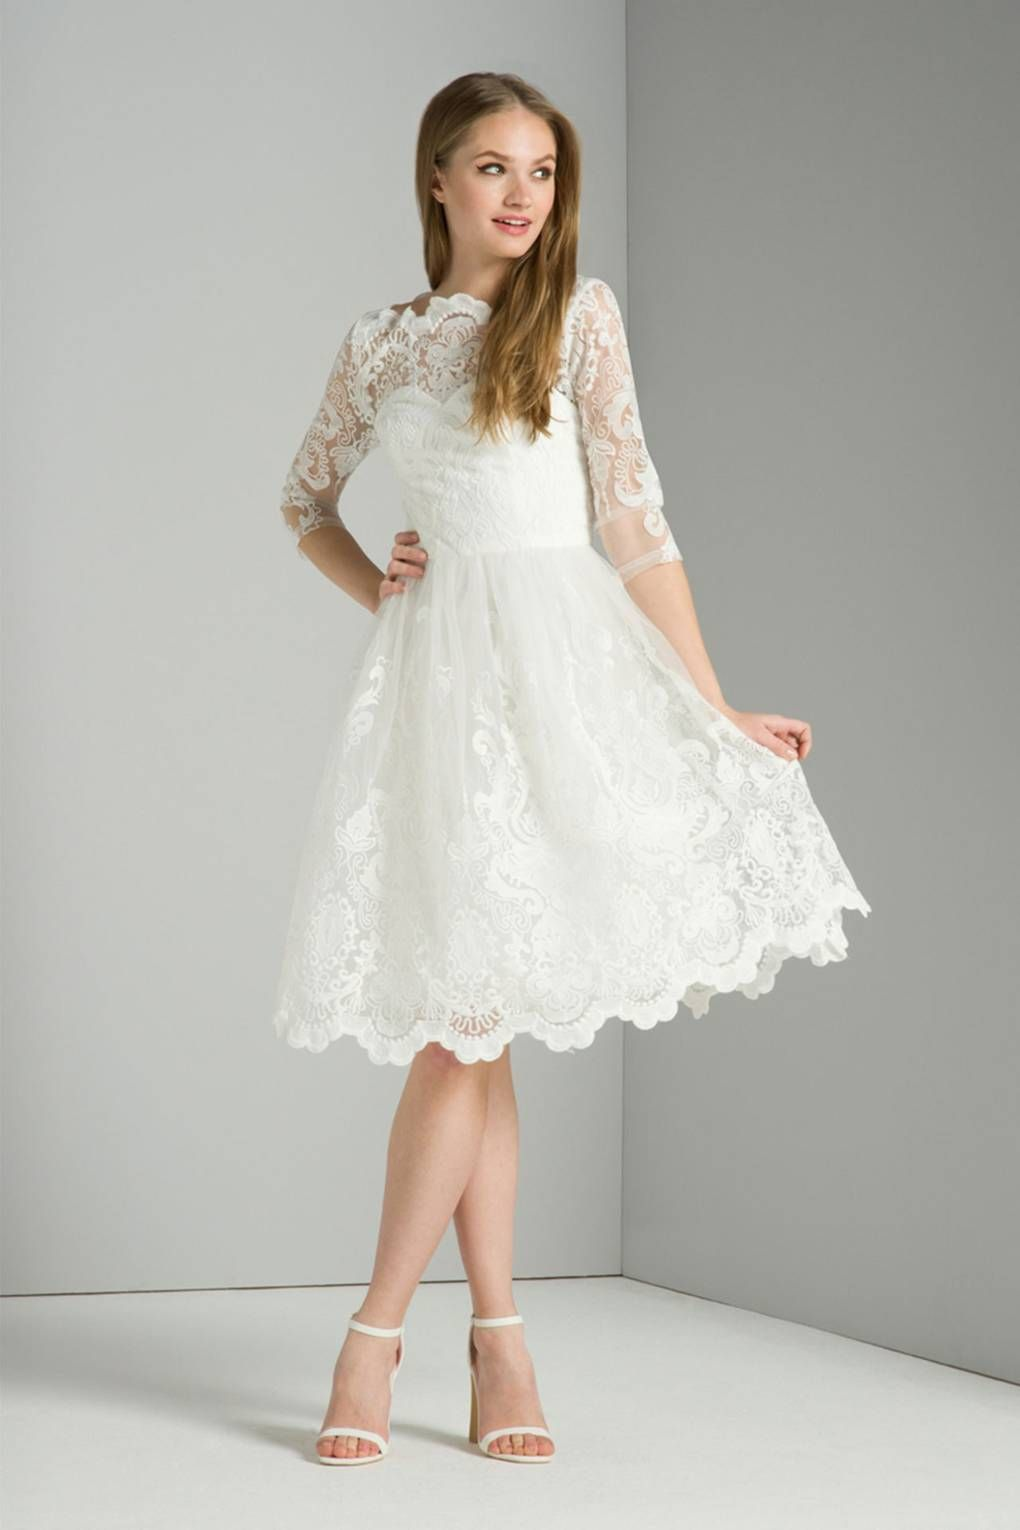 beautiful wedding dresses for a registry do wedding pinterest